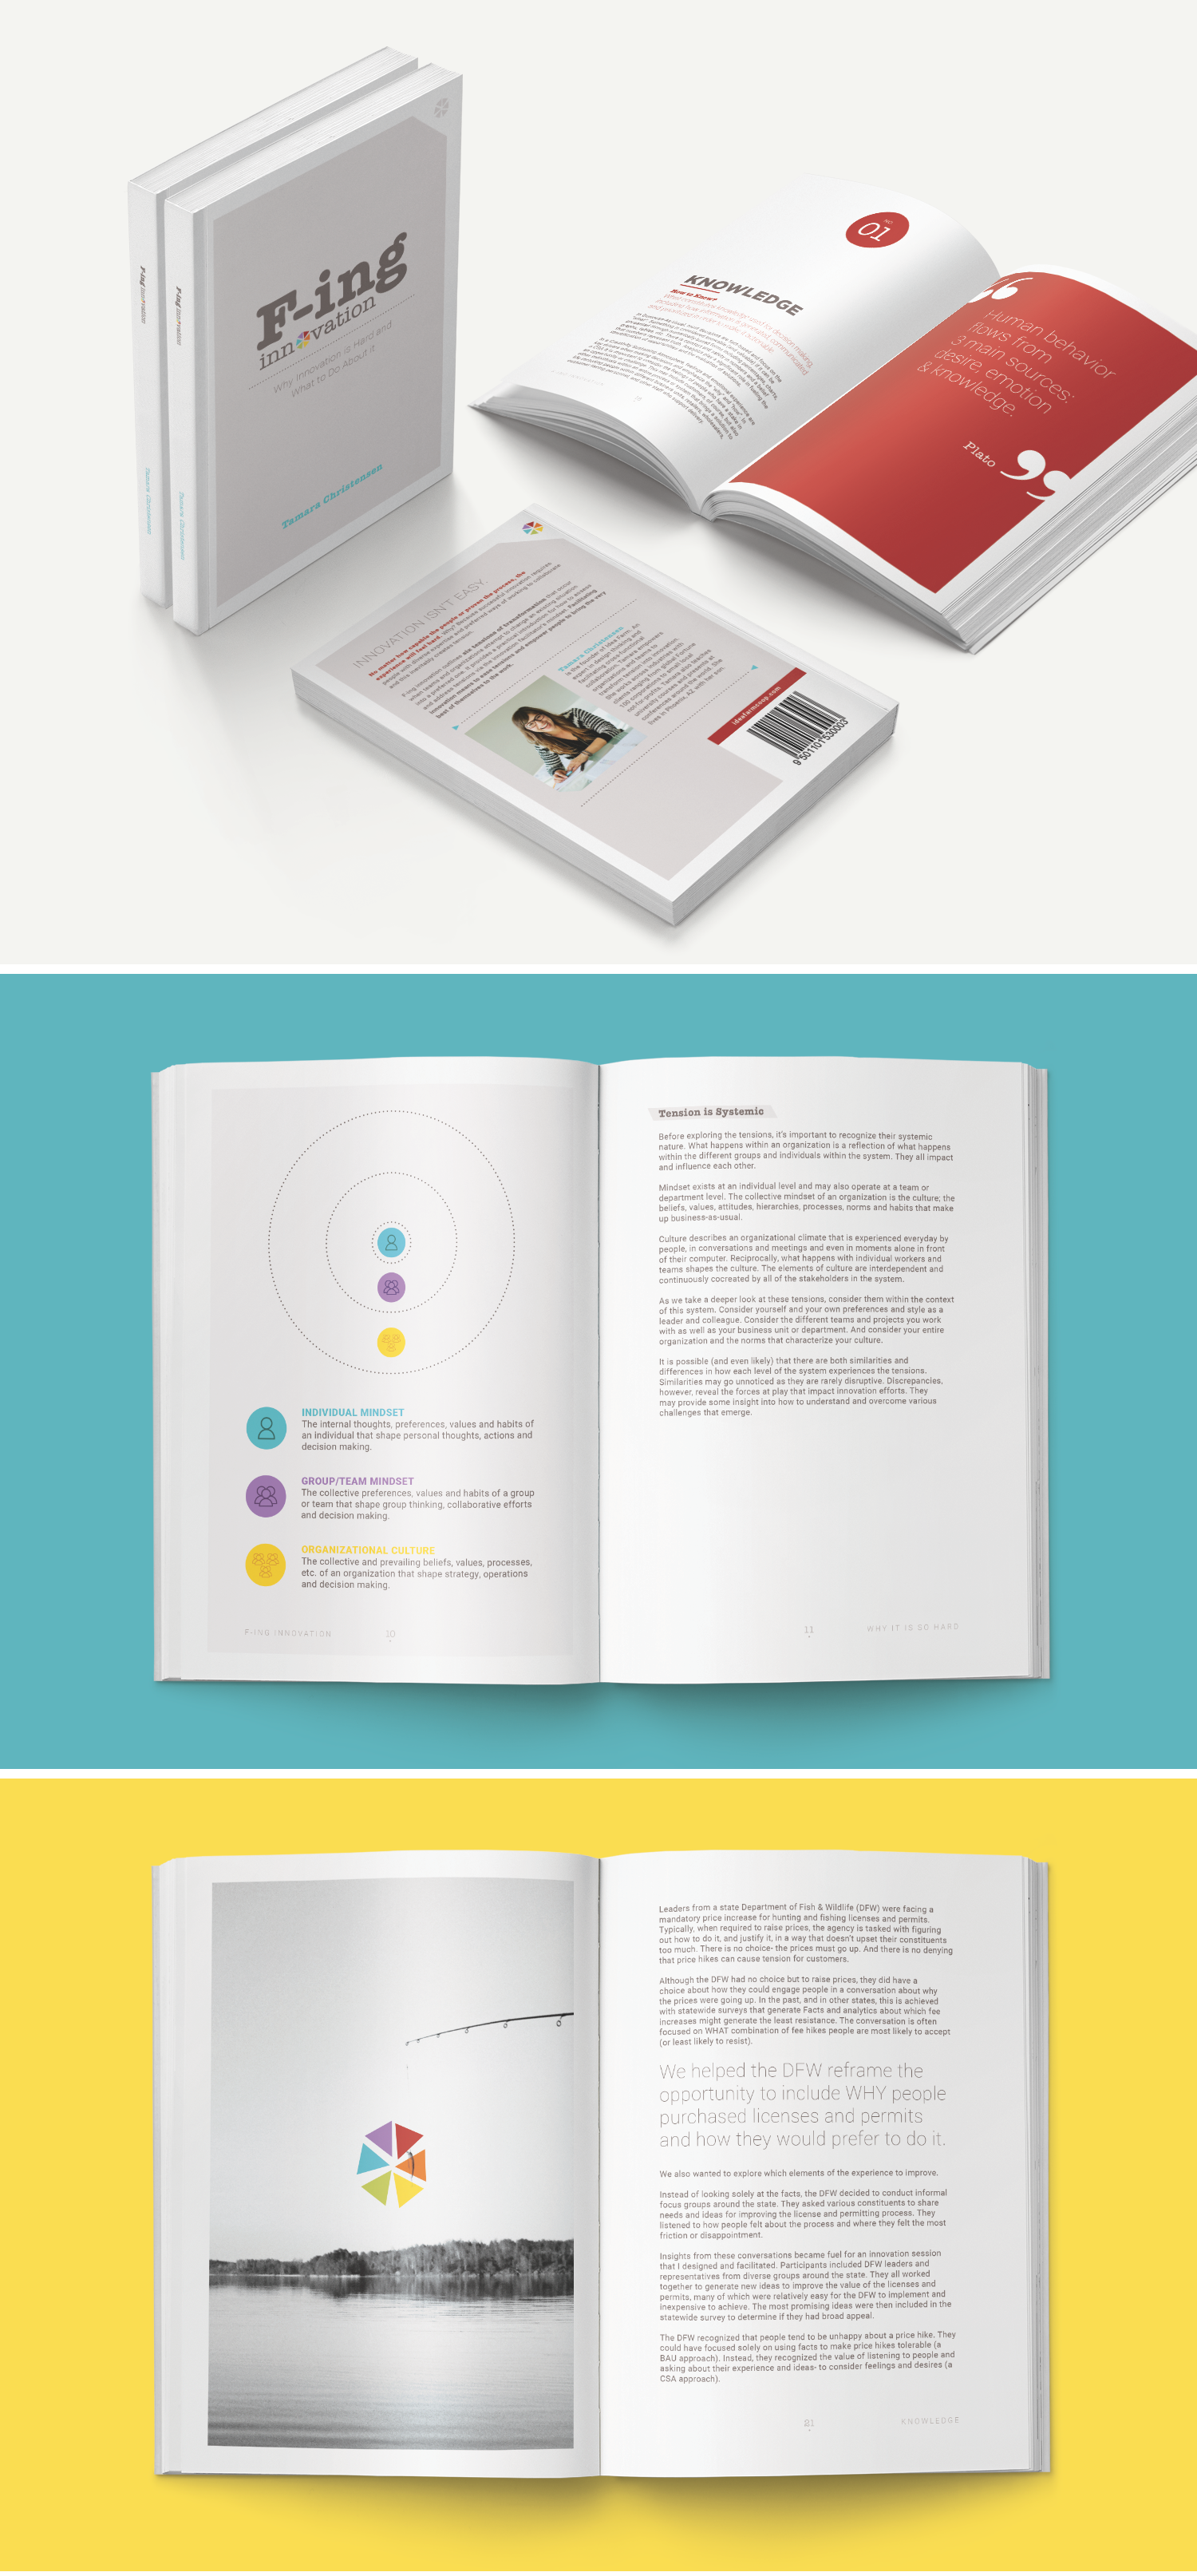 F-ing Innovation book design by Pace Creative Design Studio